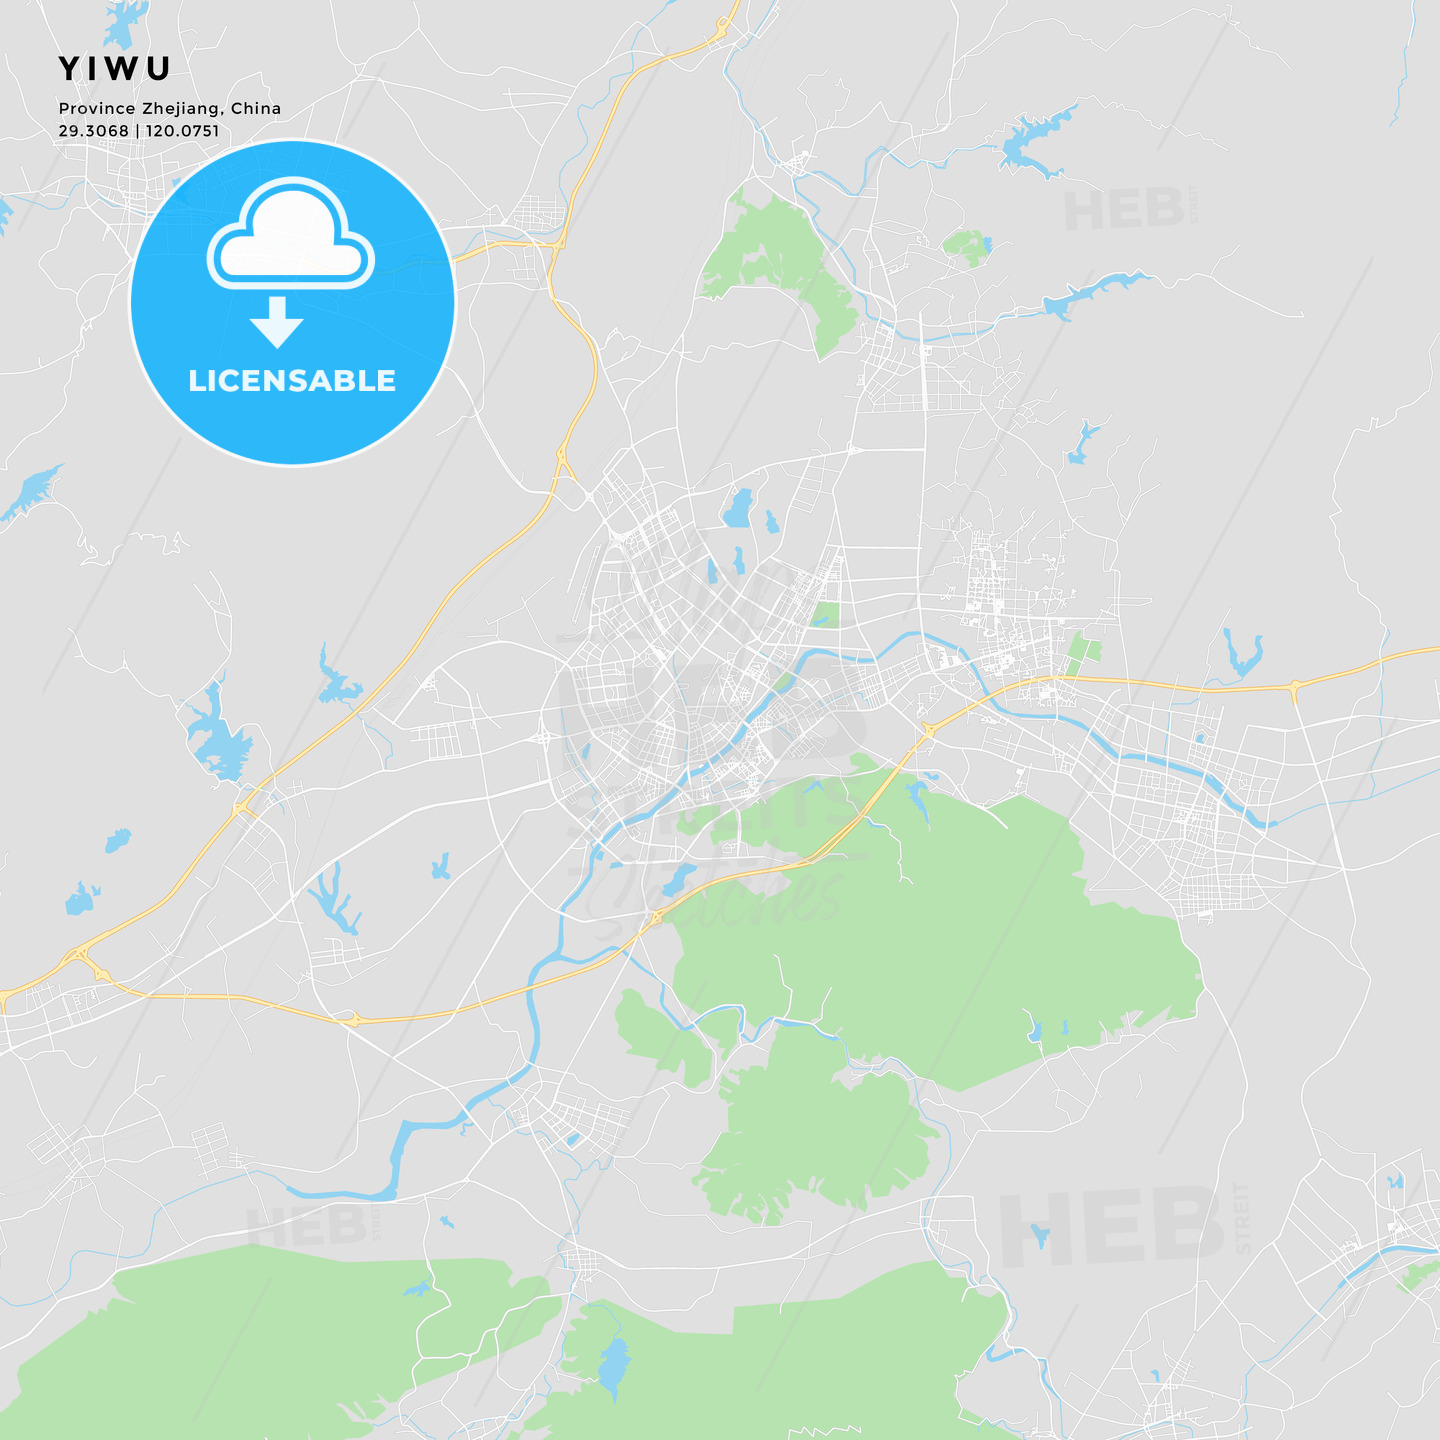 Printable Street Map Of Yiwu China Hebstreits